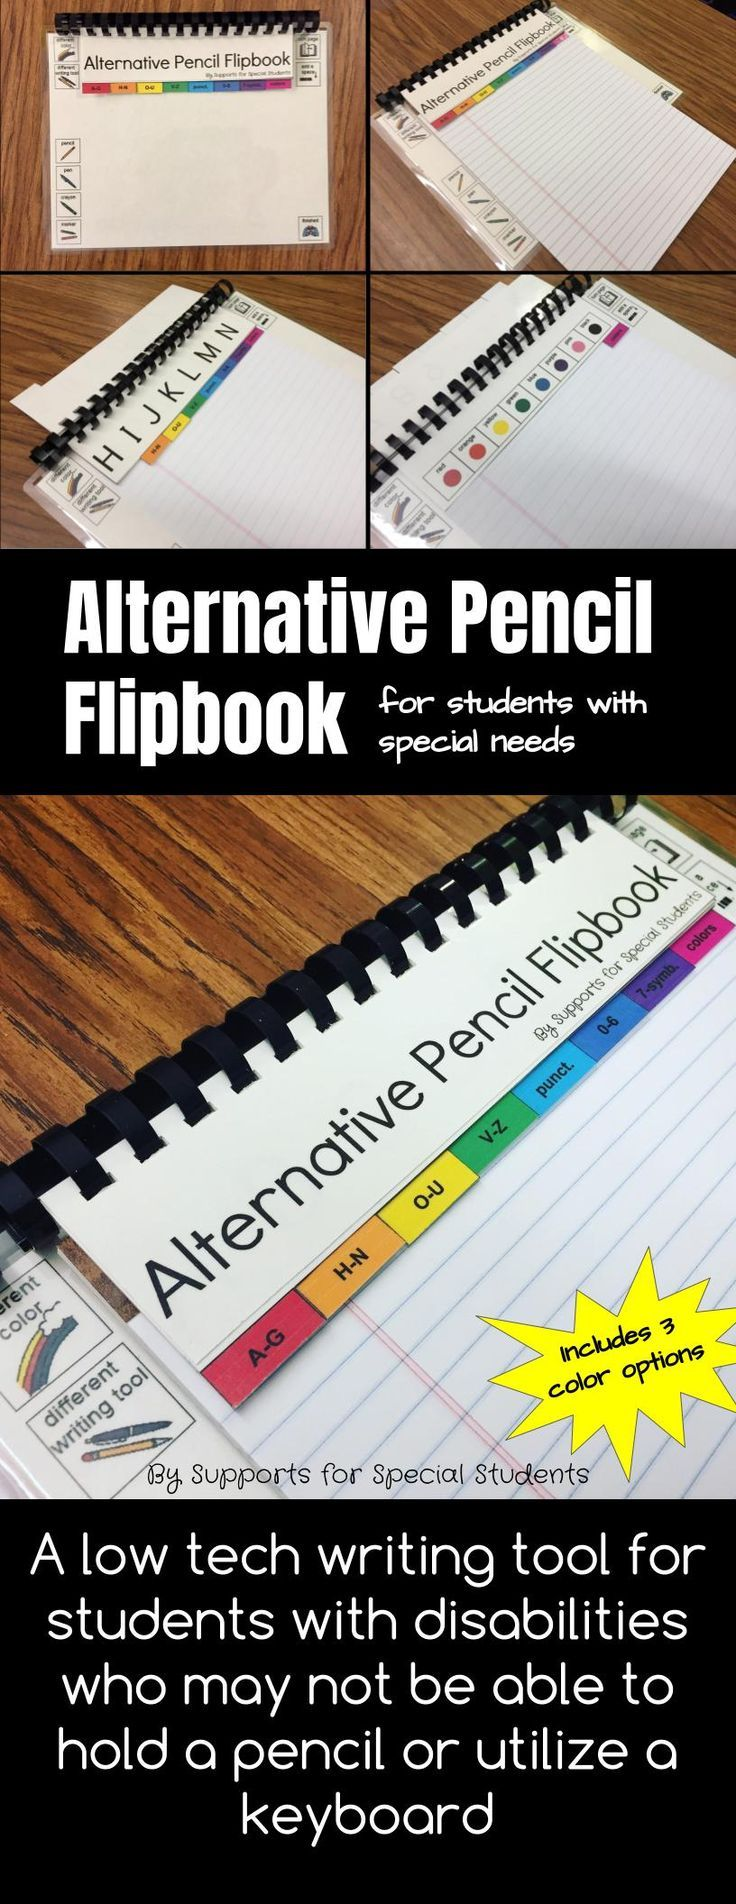 Alternative Pencil Flipbook by Supports for Special Students - This low tech writing tool for students with special needs is a must have piece of assistive technology for the special education classroom.